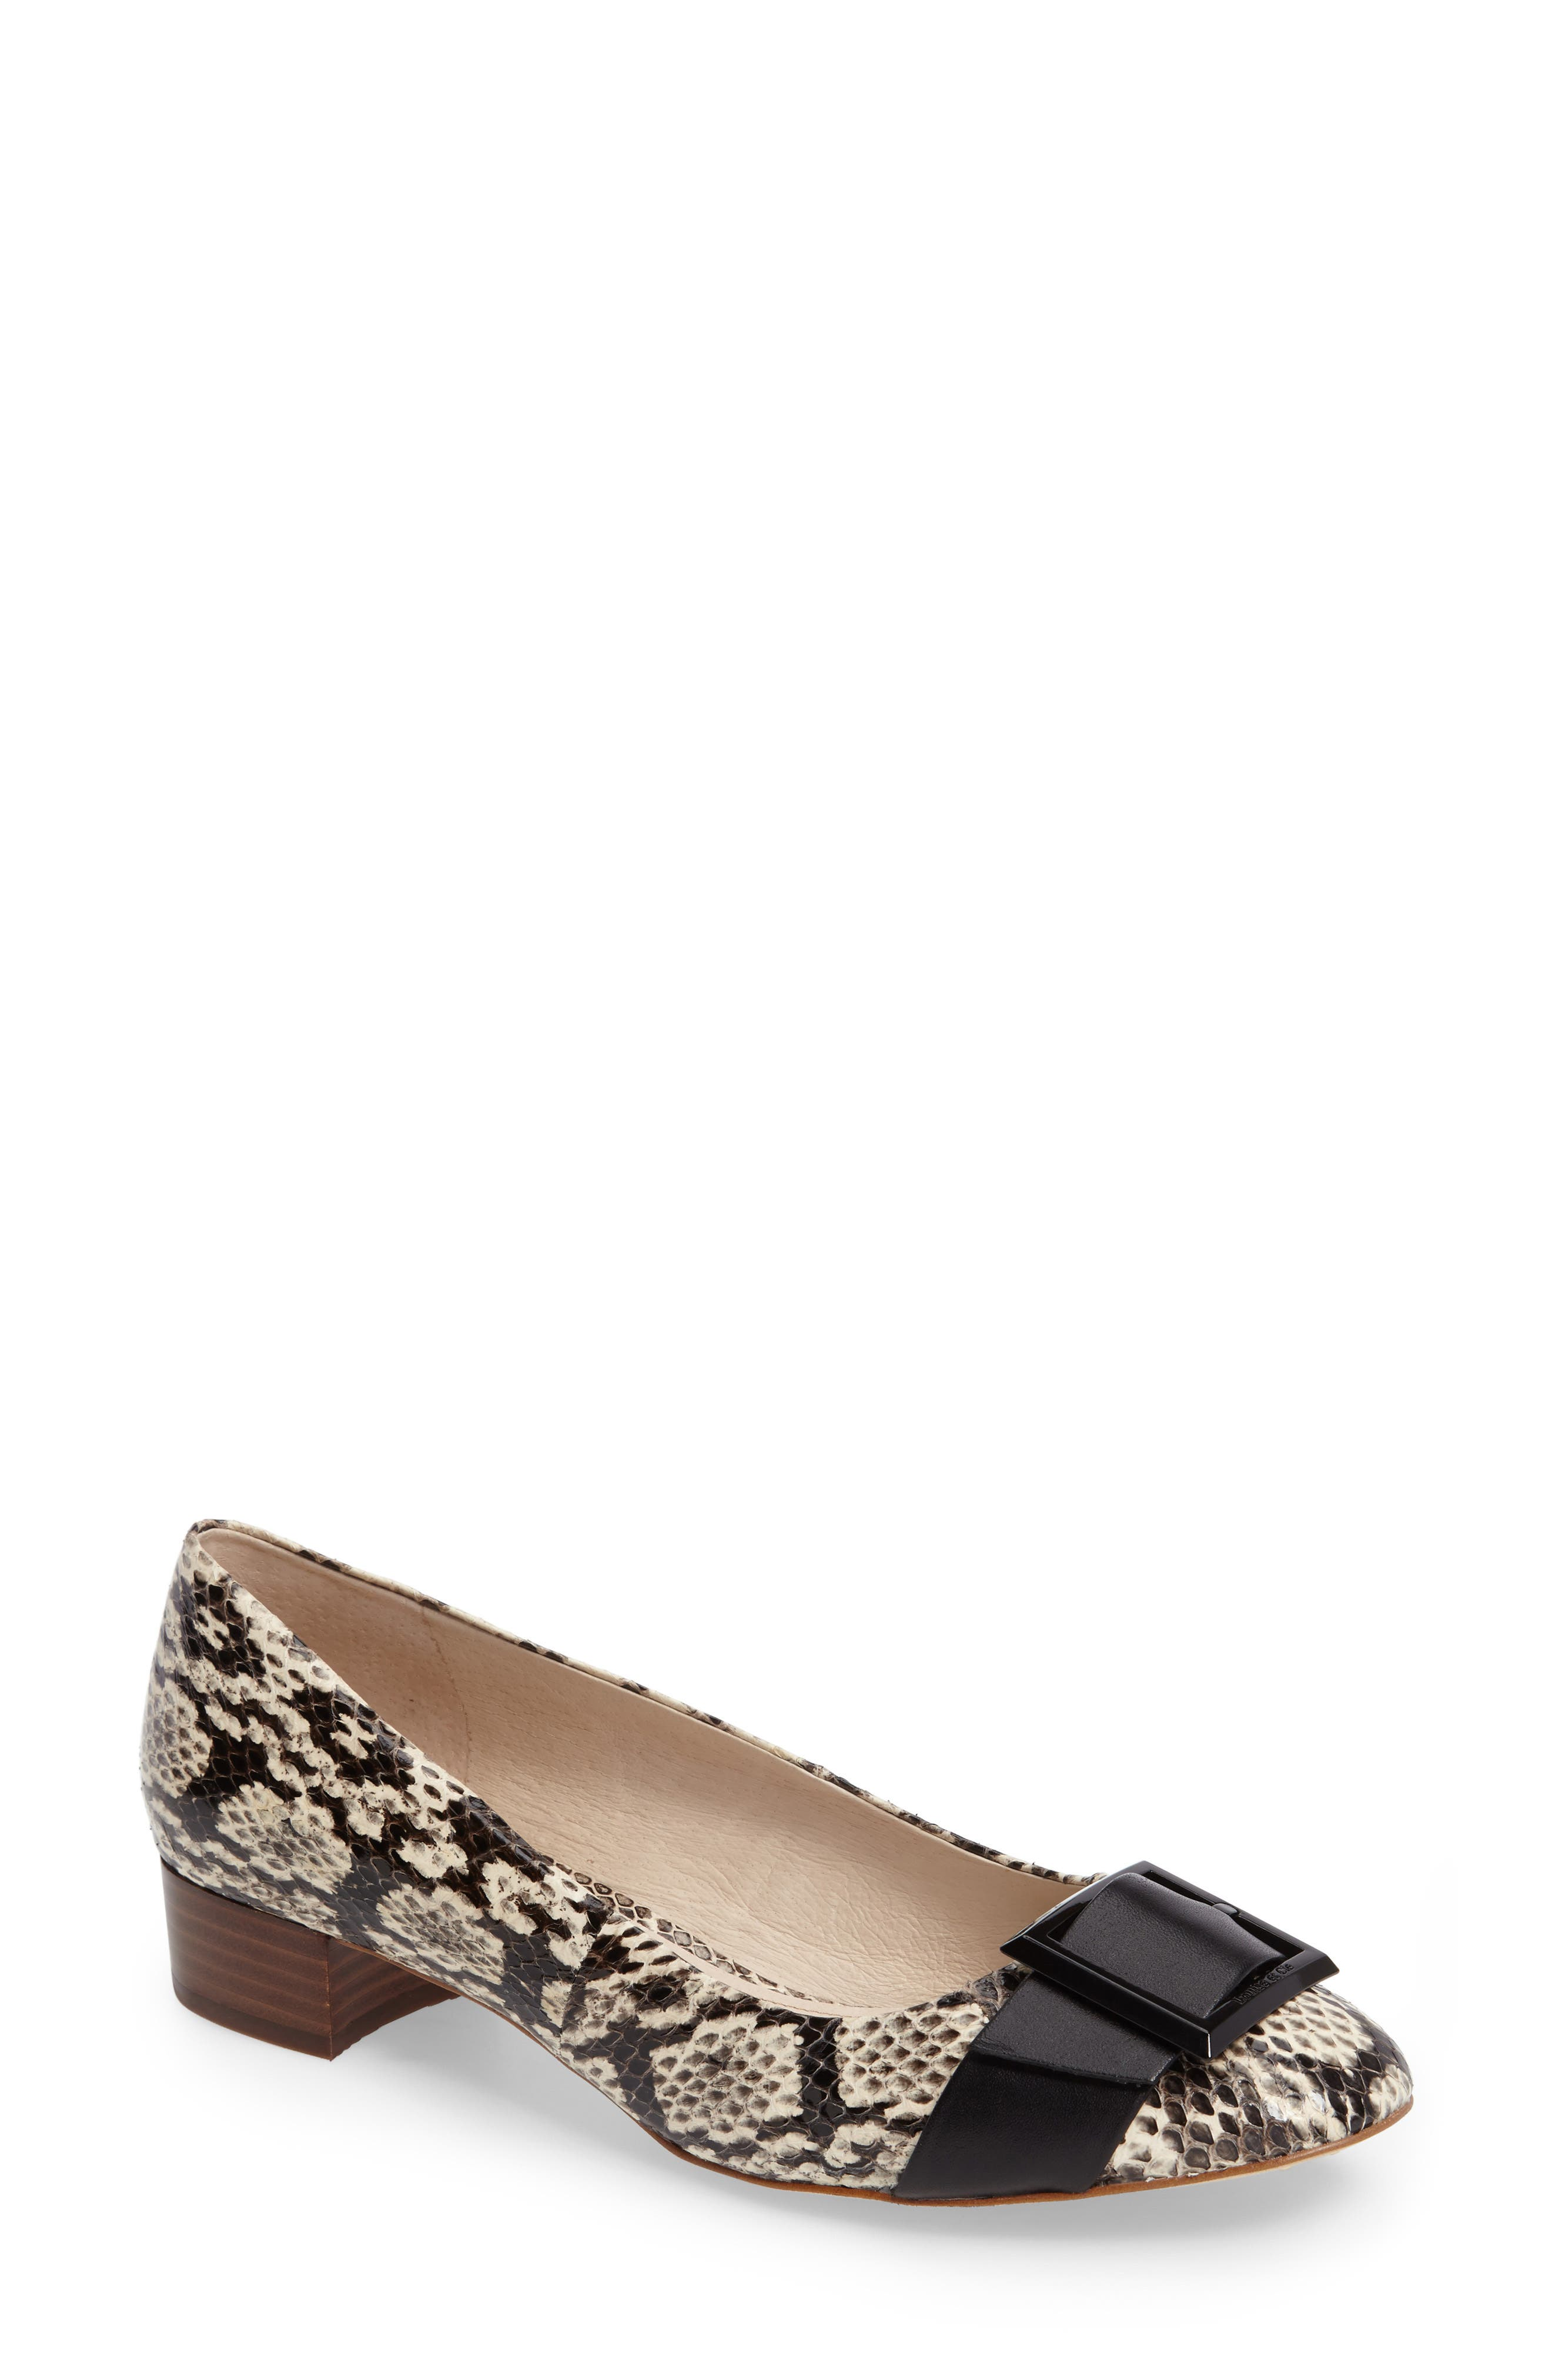 Alternate Image 1 Selected - Louise et Cie 'Brianna' Buckle Toe Pump (Women) (Nordstrom Exclusive)